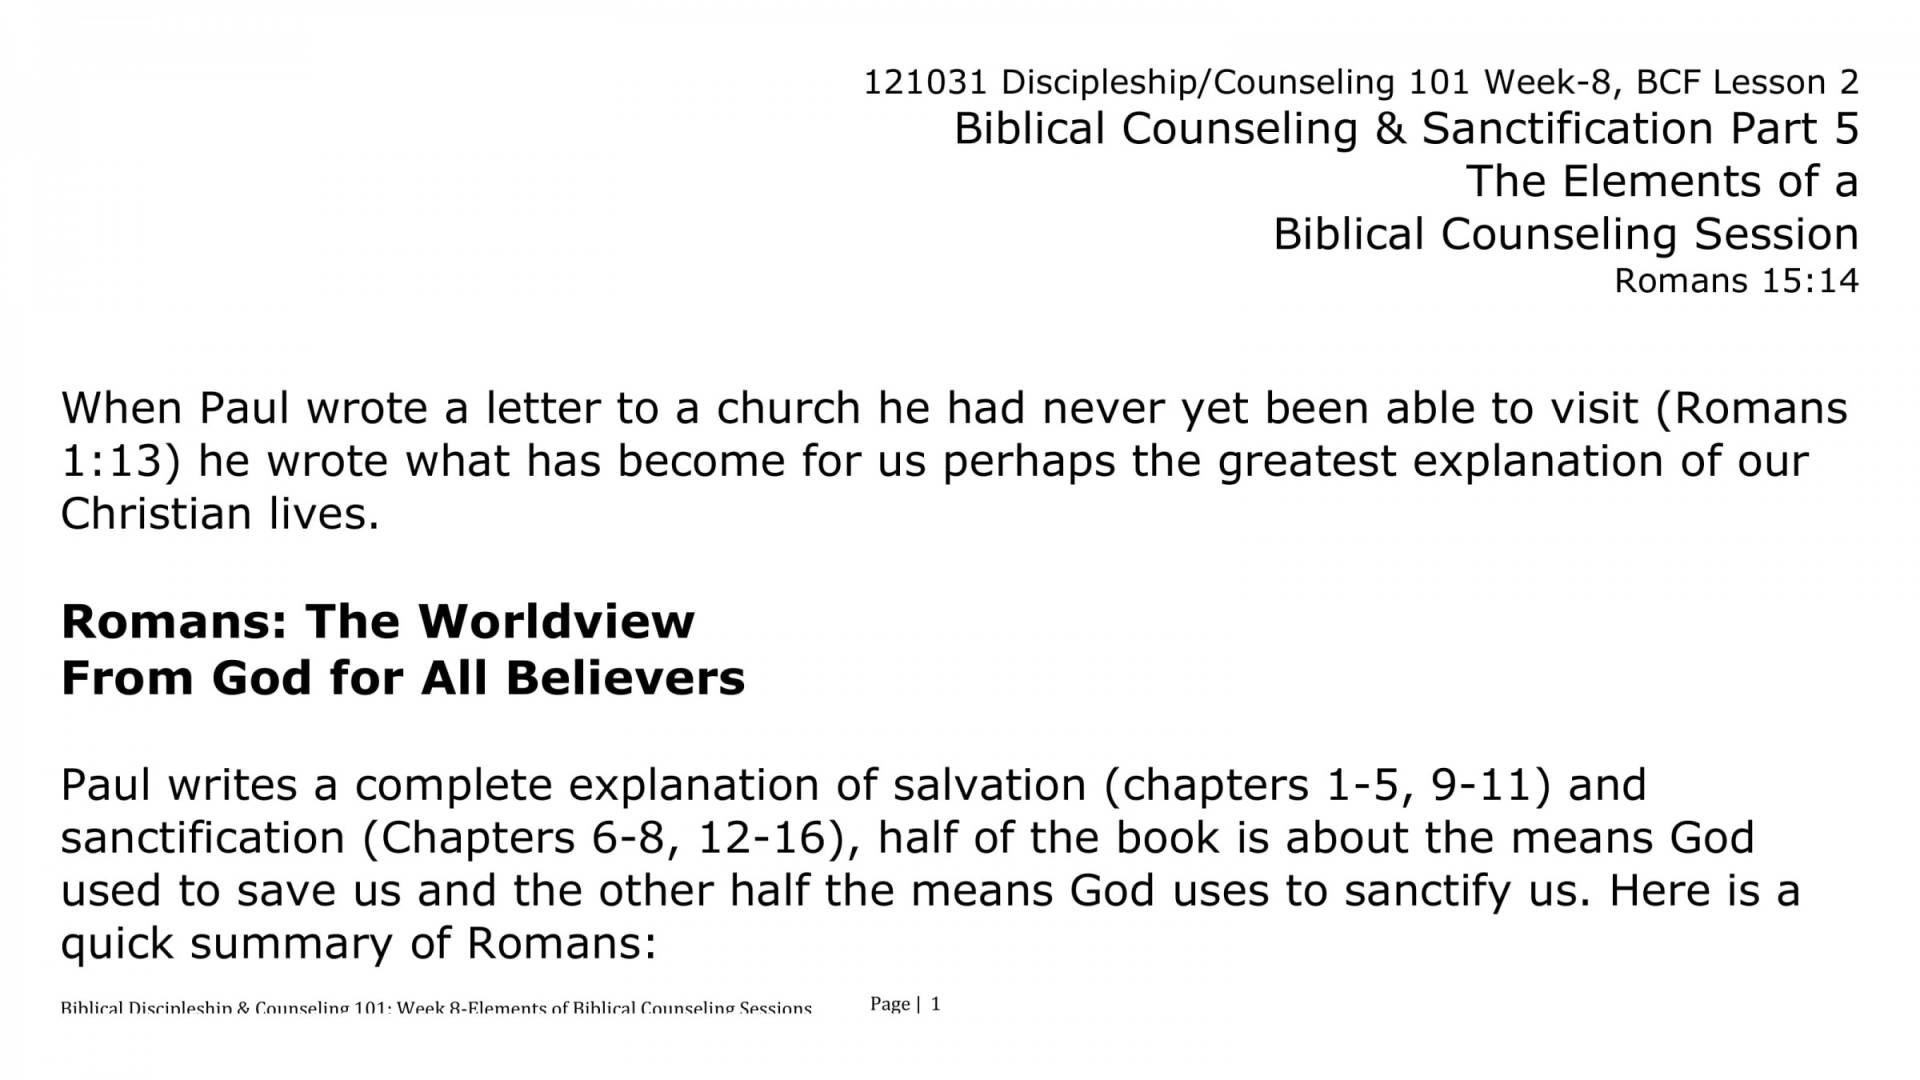 BC&D-08 - Lesson 2 - The Call From God To Be Disciple Making Biblical Counselors-01